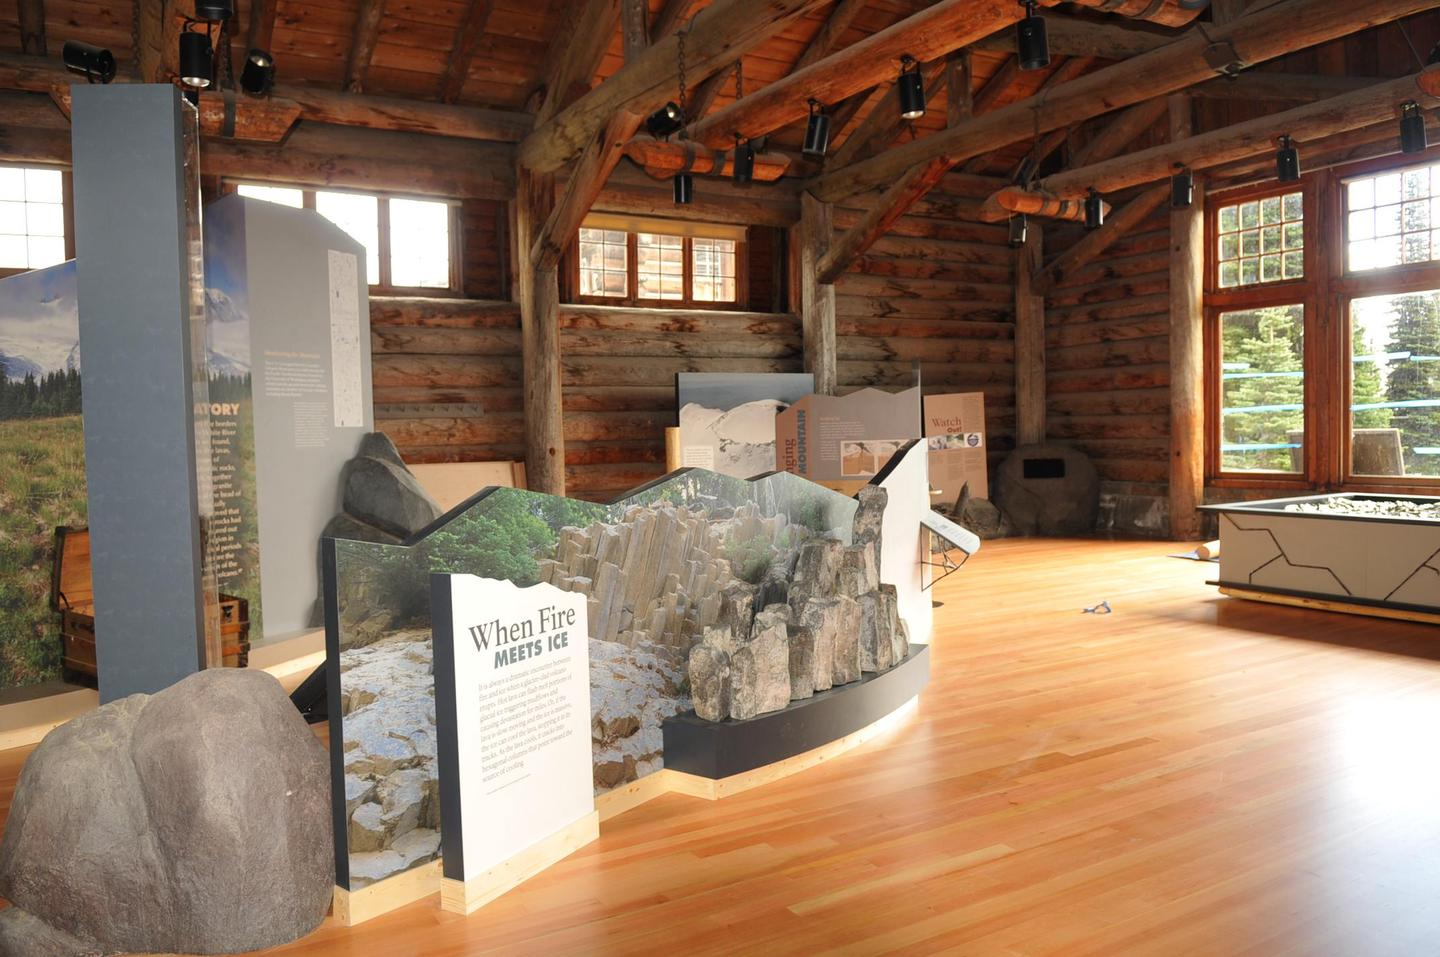 Sunrise Visitor Center ExhibitsExplore the geology, glaciers, and subalpine environment of Sunrise and learn about the tribes that use this area inside the Sunrise Visitor Center.